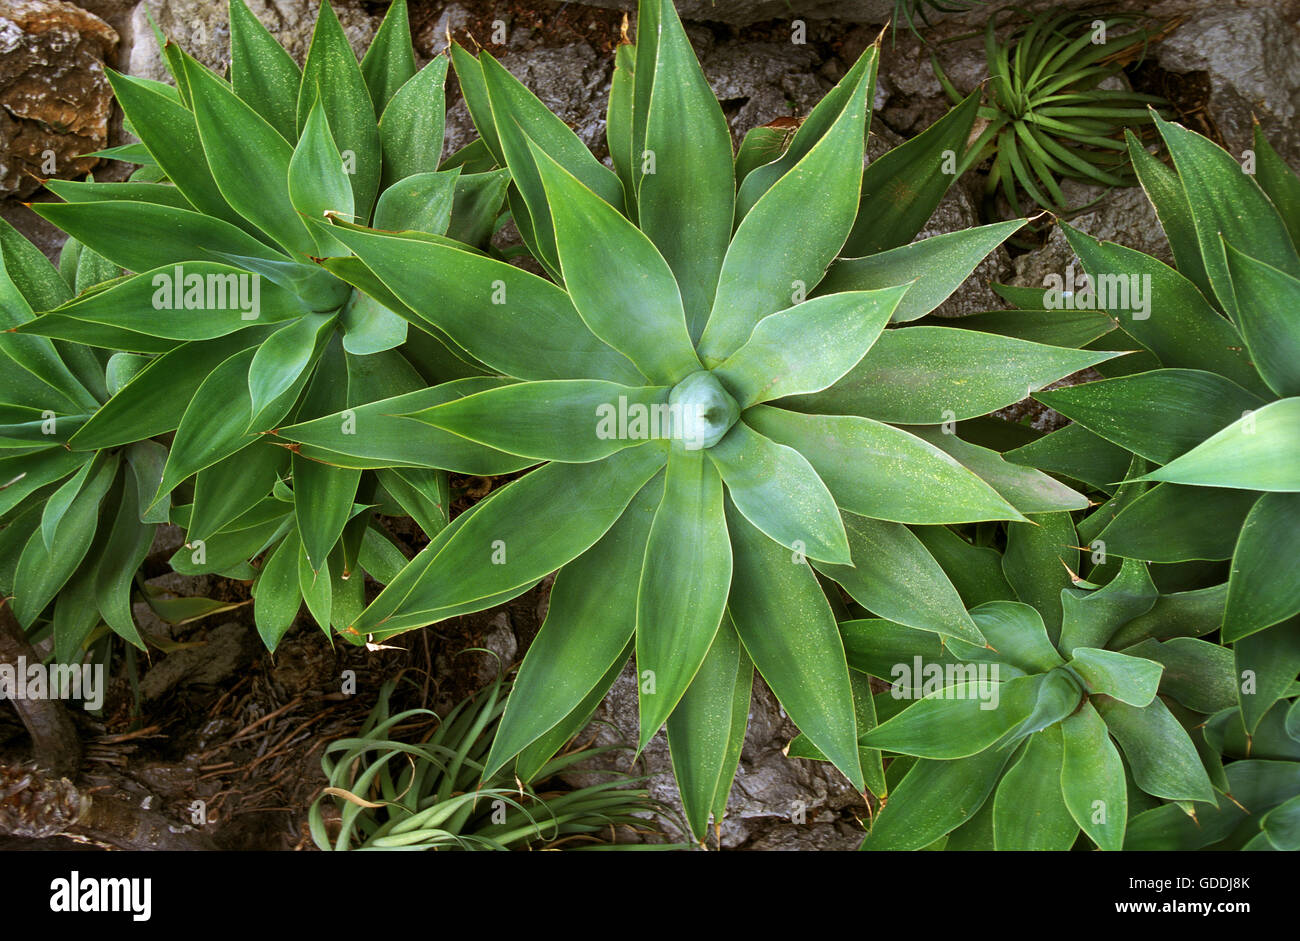 SWAN'S NECK AGAVE agave attenuata, MEXICO - Stock Image